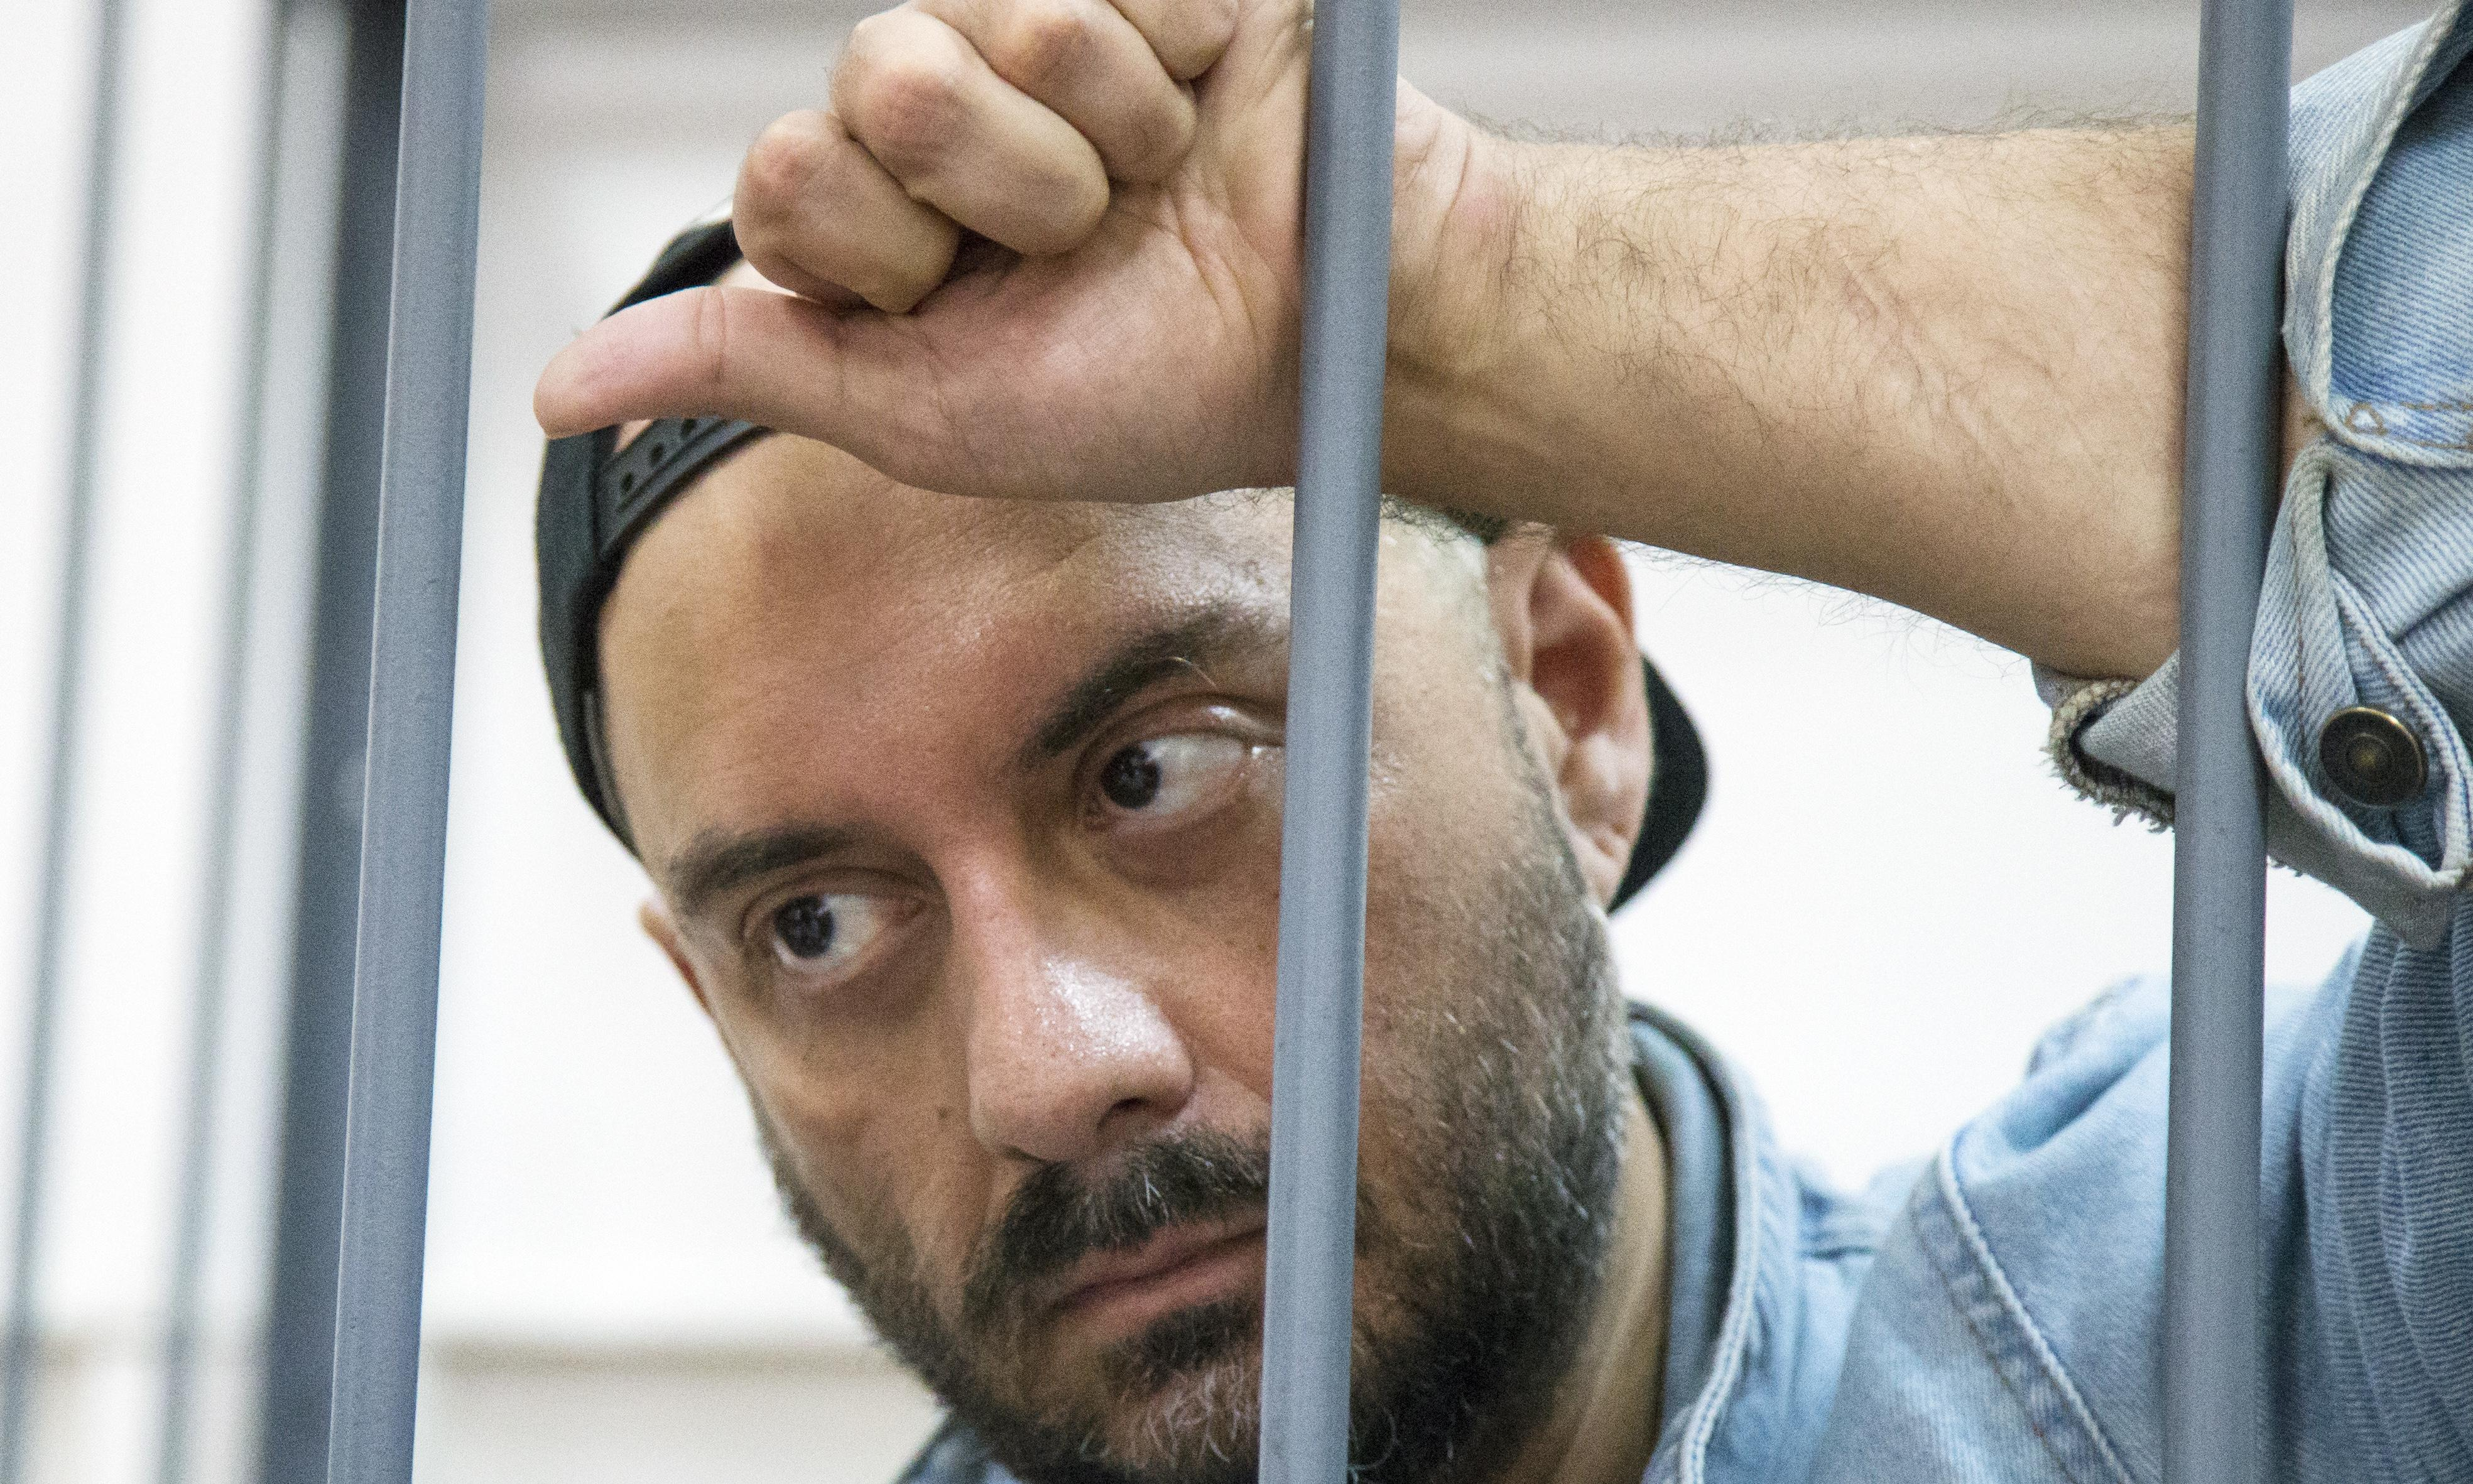 Kirill Serebrennikov, director detained in Moscow: 'Complexity is resistance'